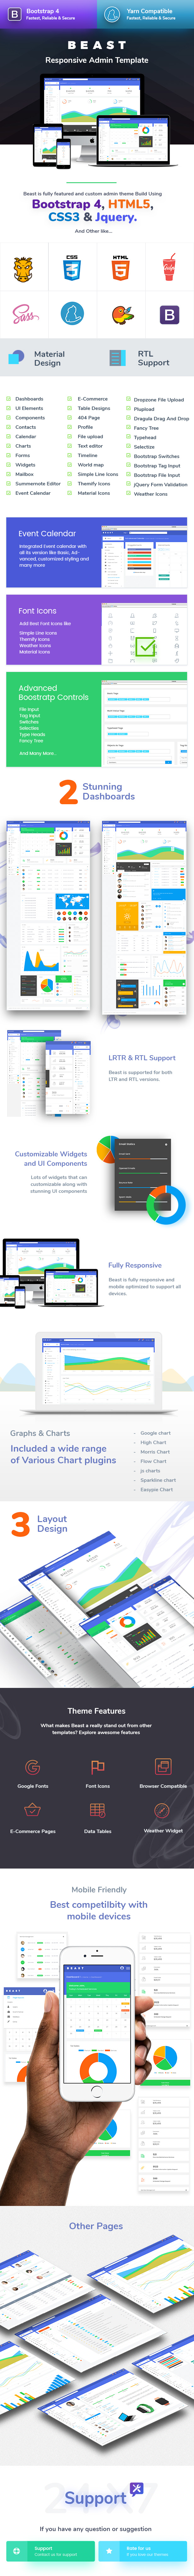 Bootstrap 4 Admin Template - 2